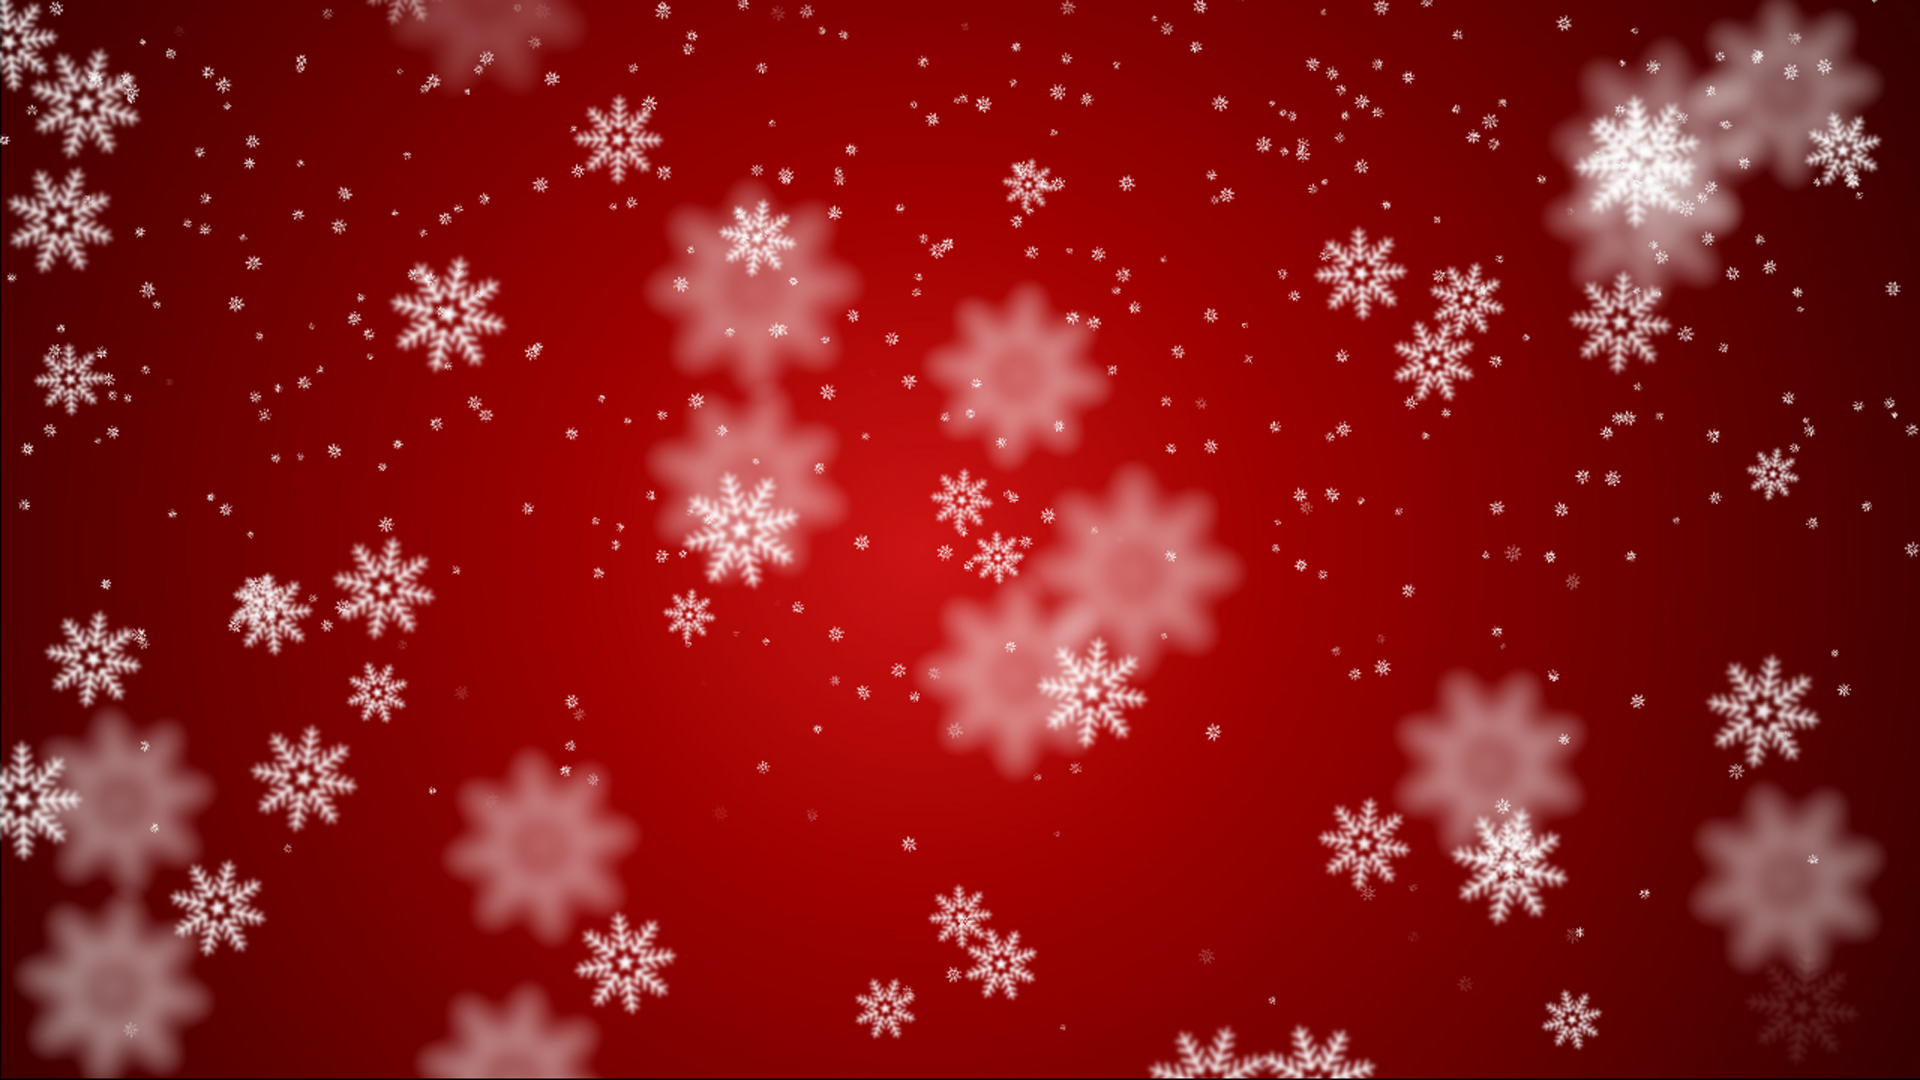 red christmas background hd